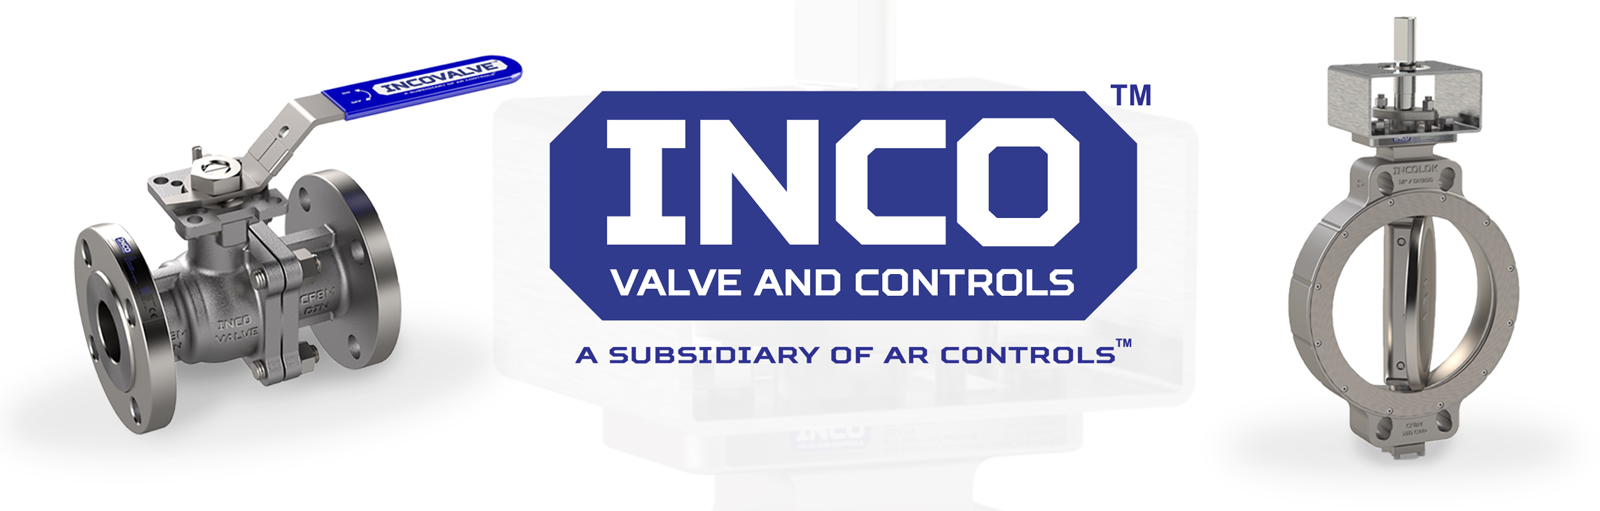 INCO Valve and Controls